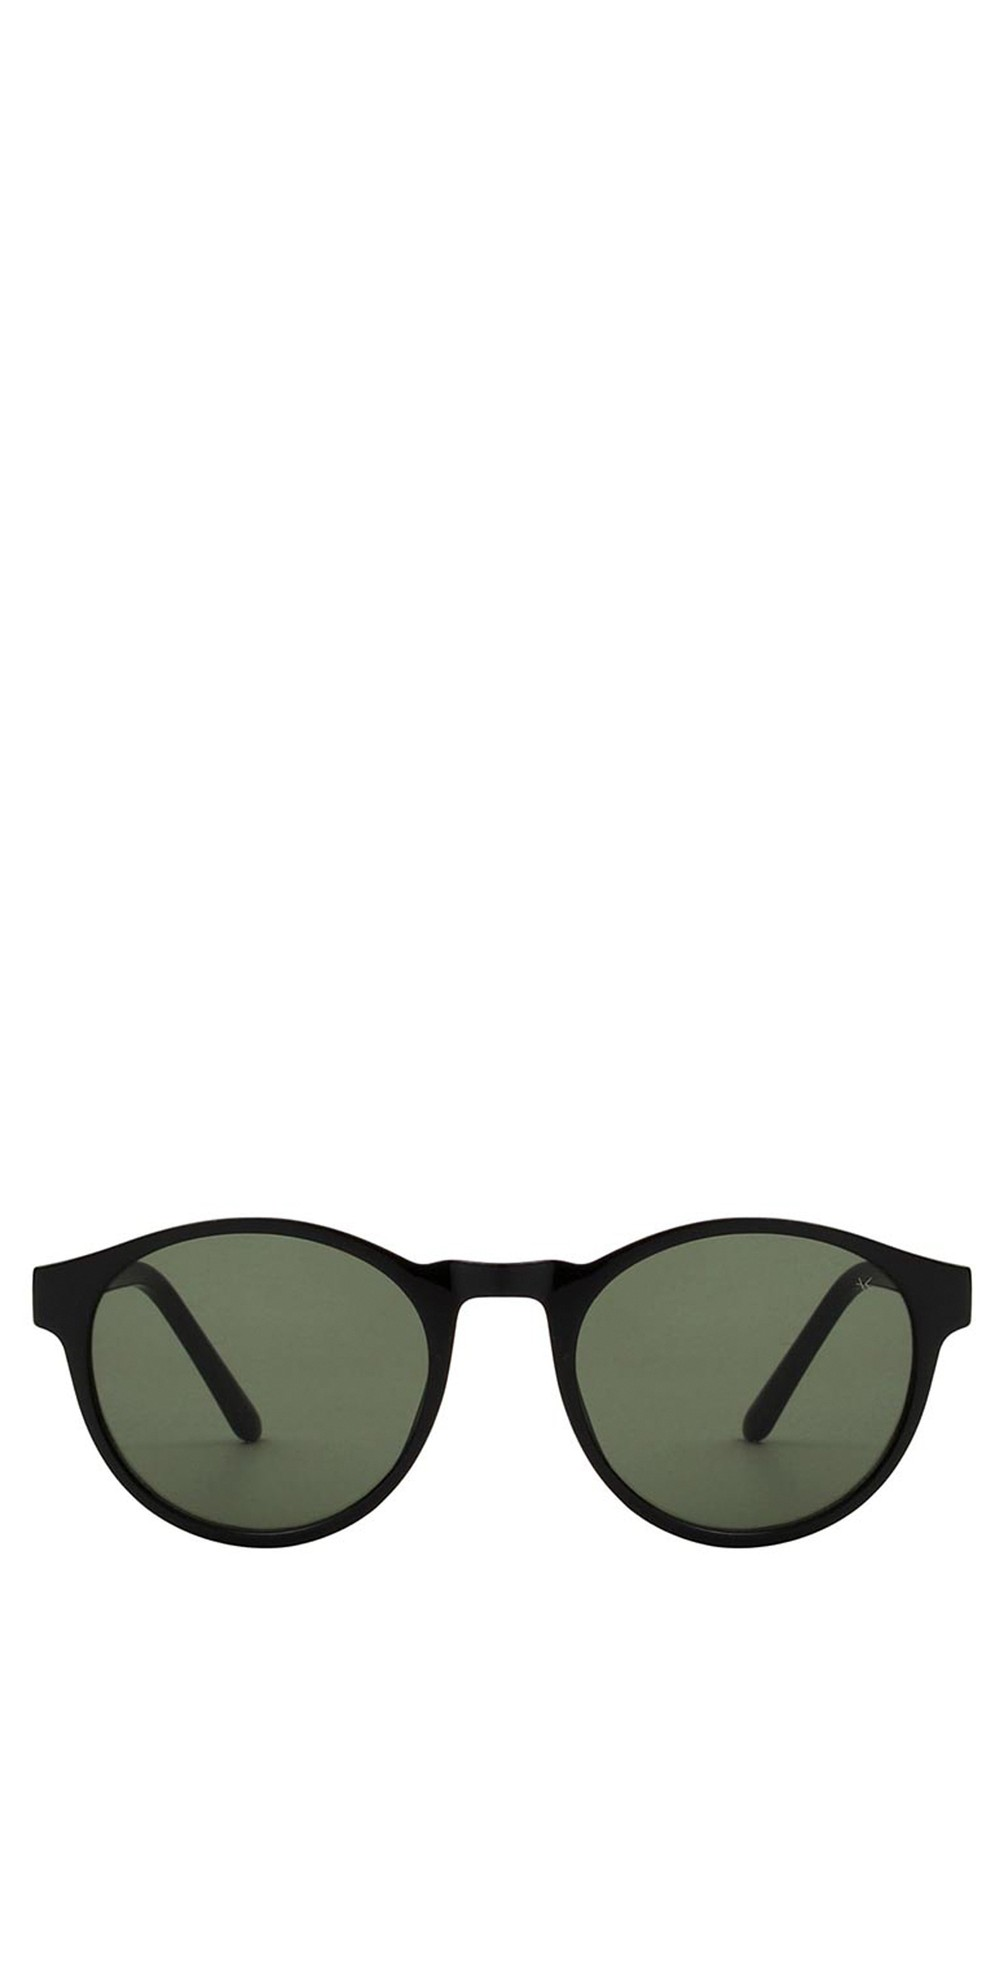 Marvin Sunglasses main image